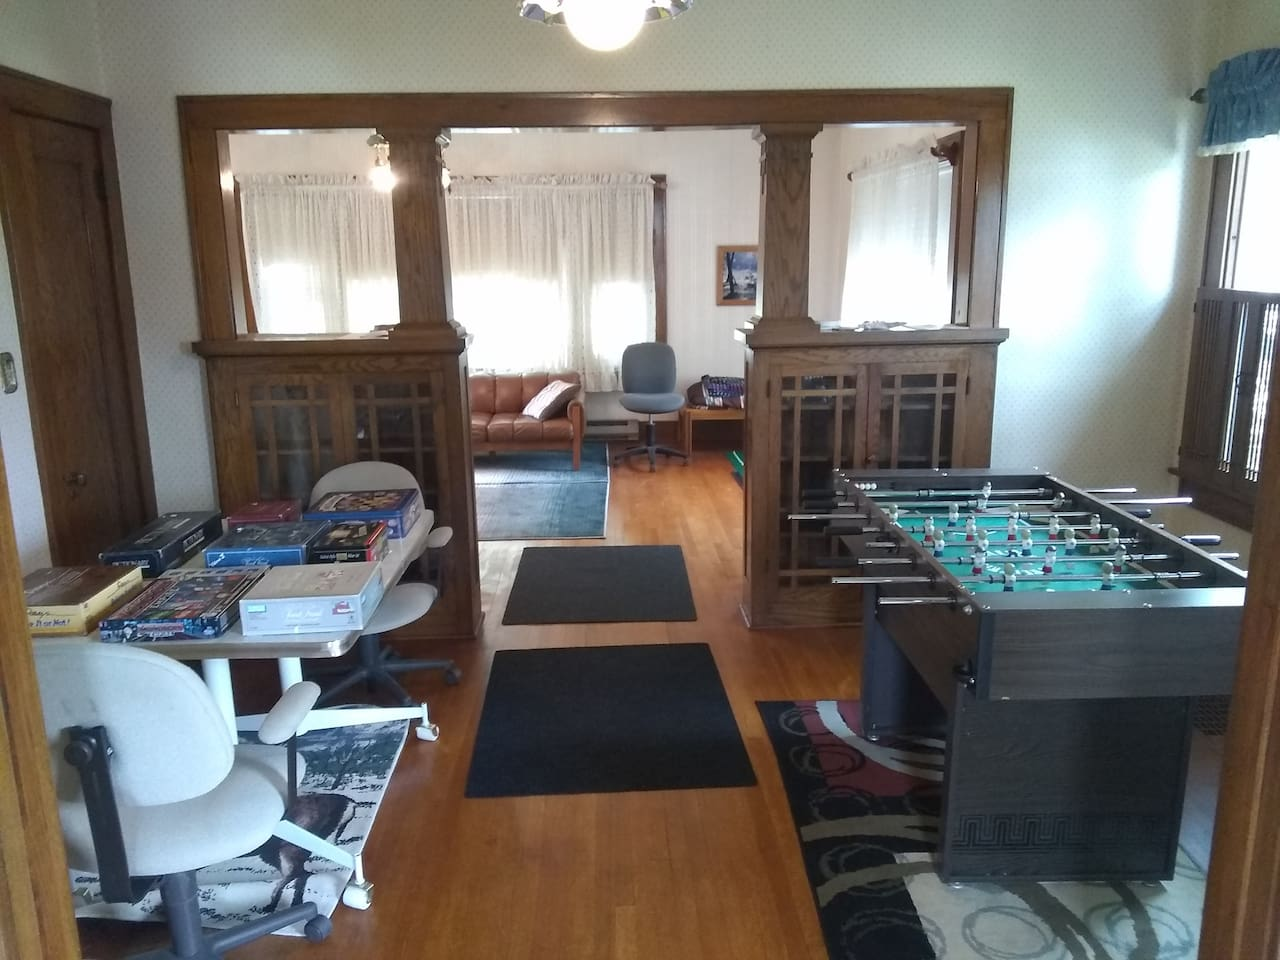 Game room with foosball table & board games to make for a fun stay!